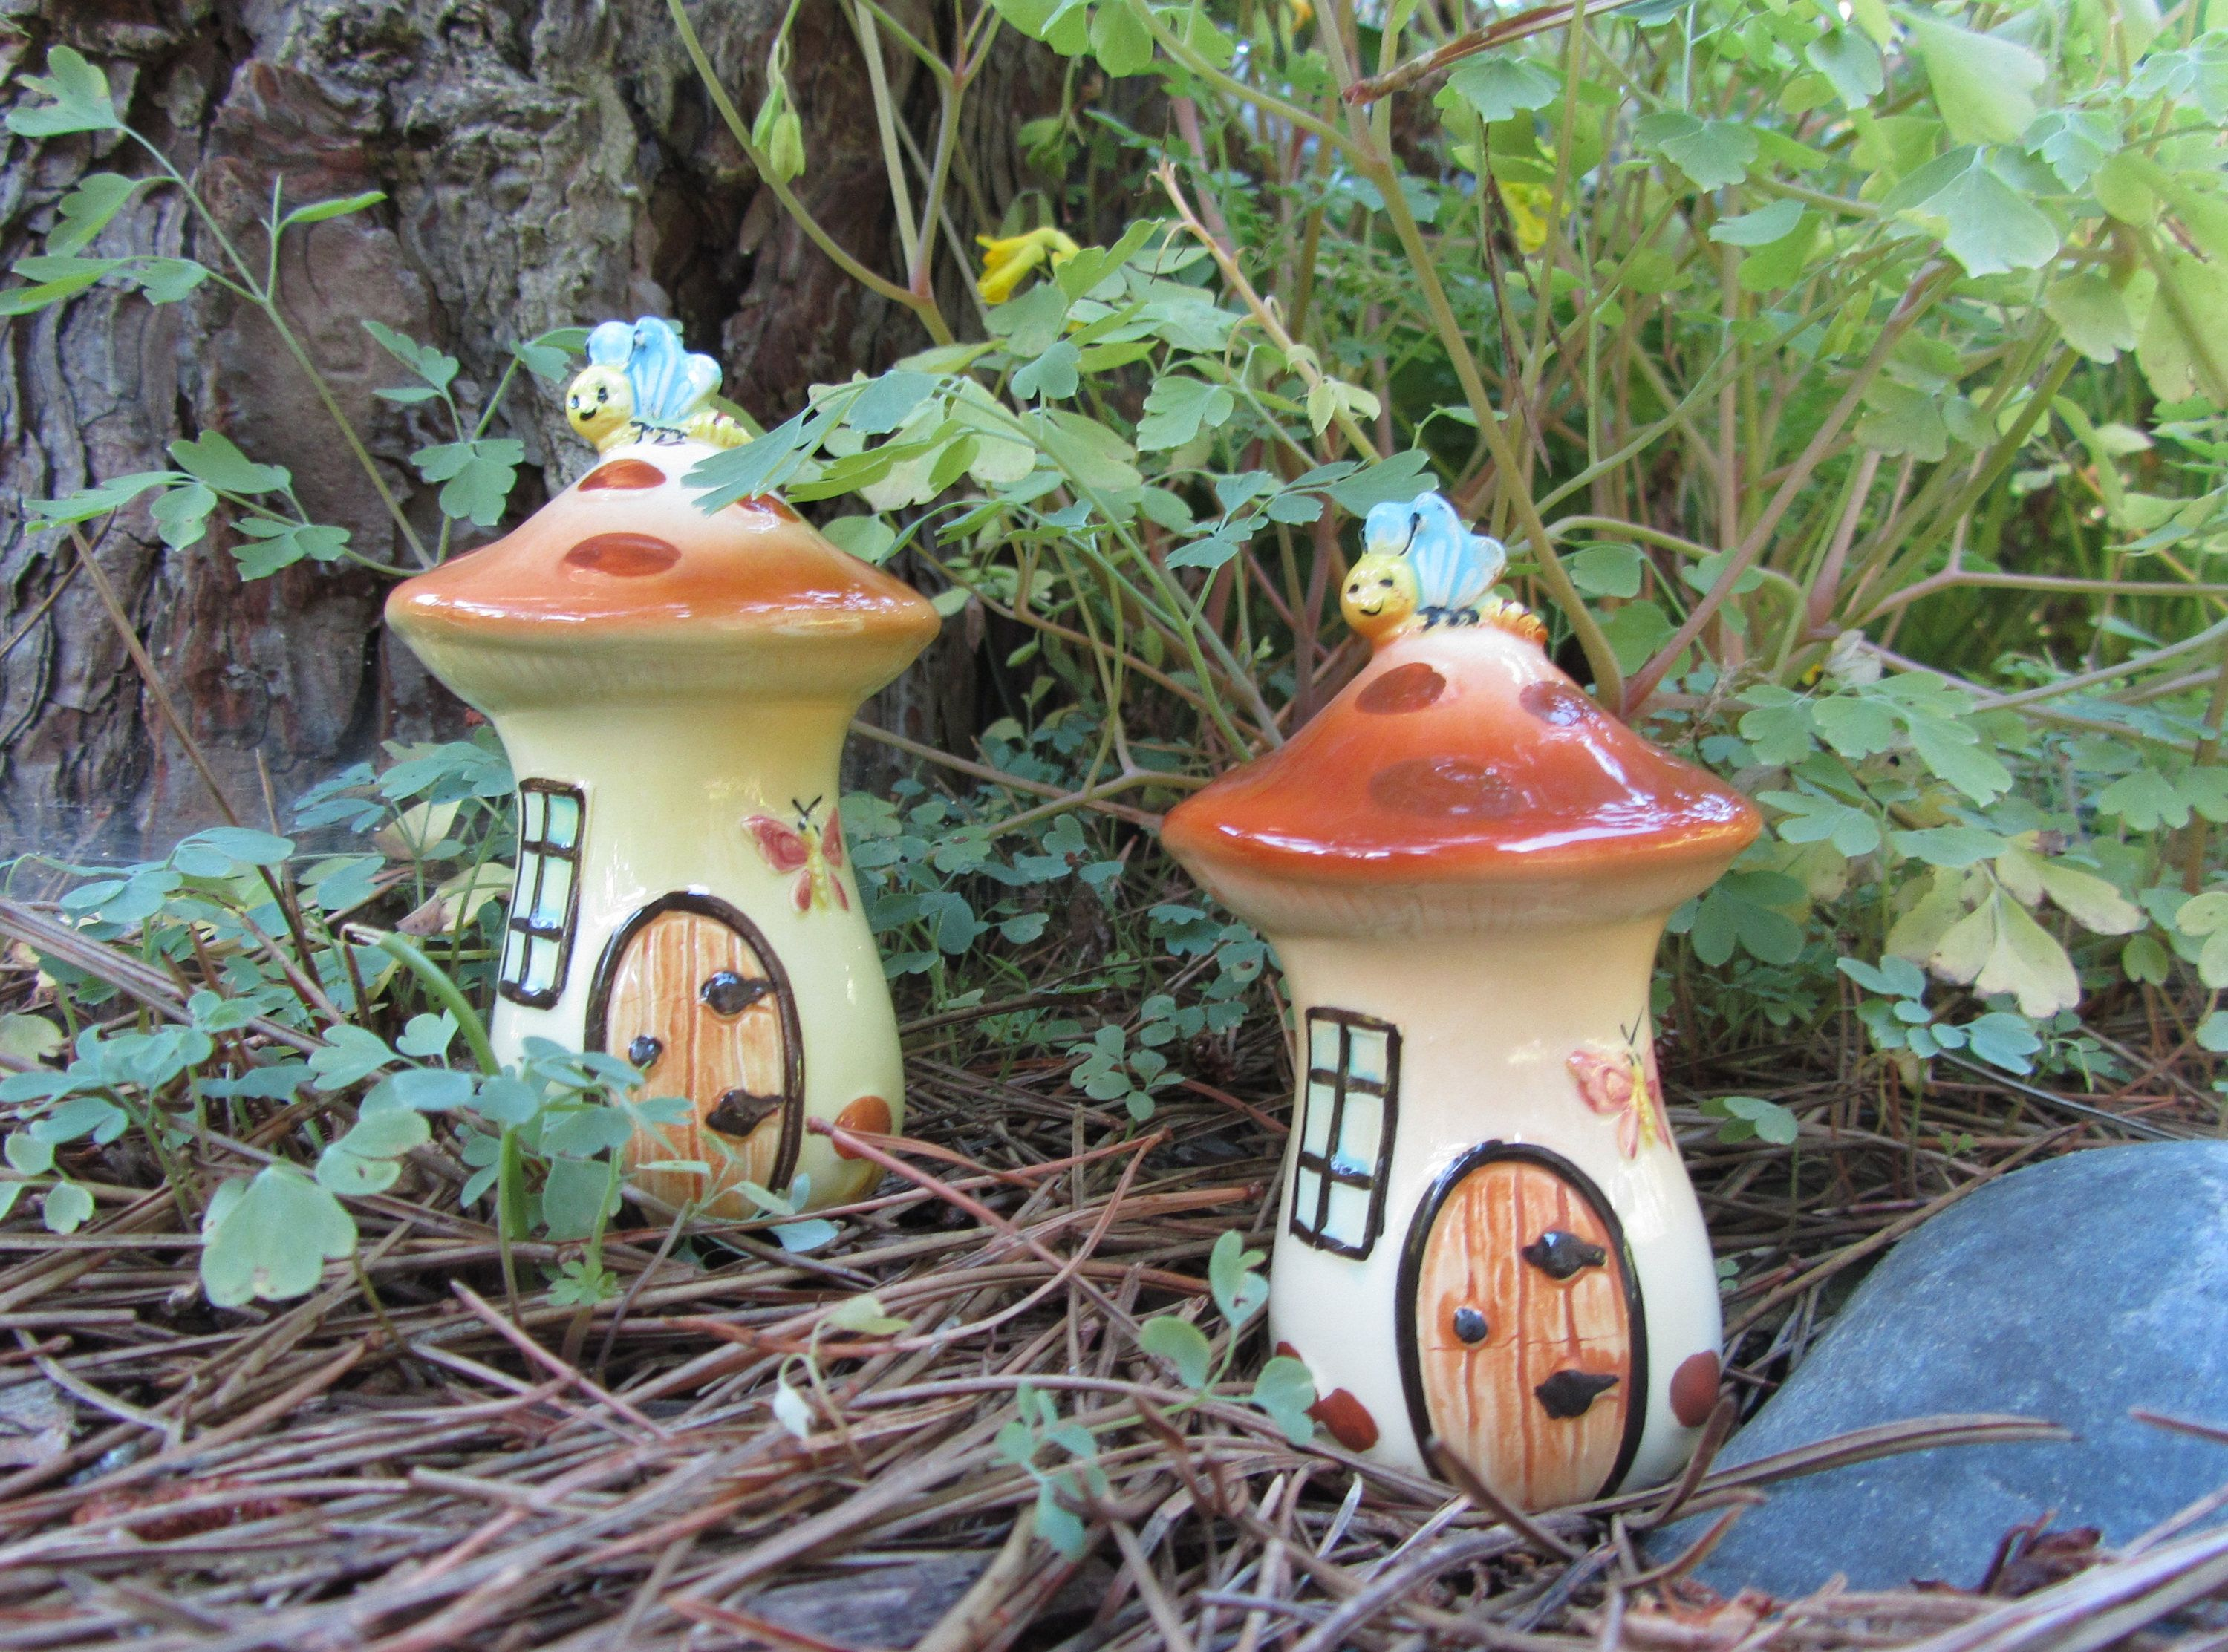 Medium Crop Of Mushroom Fairy Garden